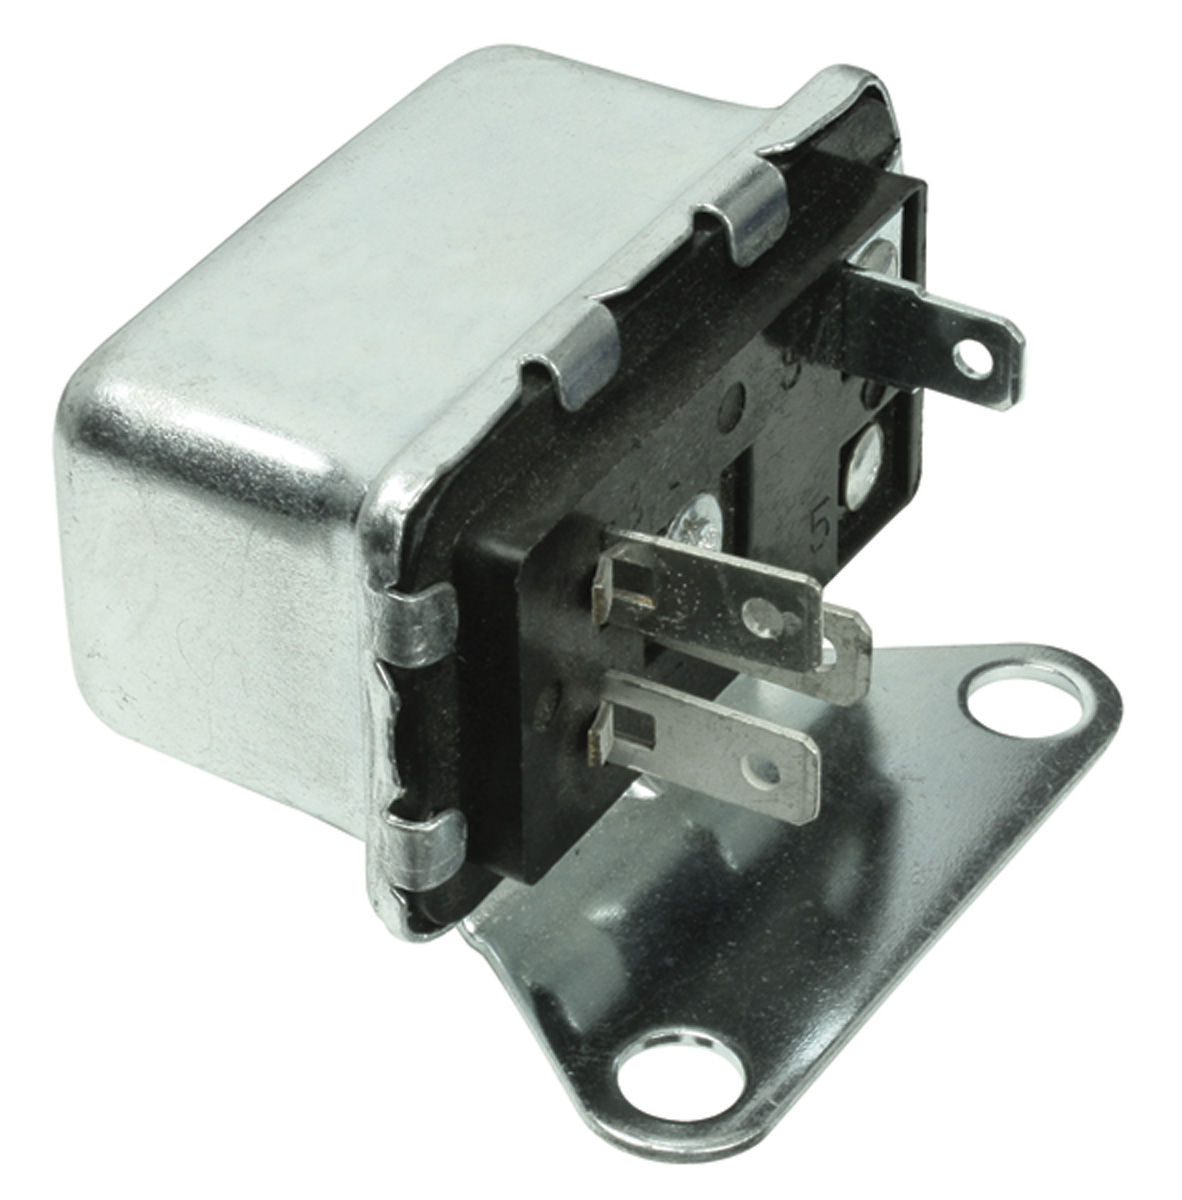 1967 68 cutlass blower motor relay w ac by old air for Blower motor for ac